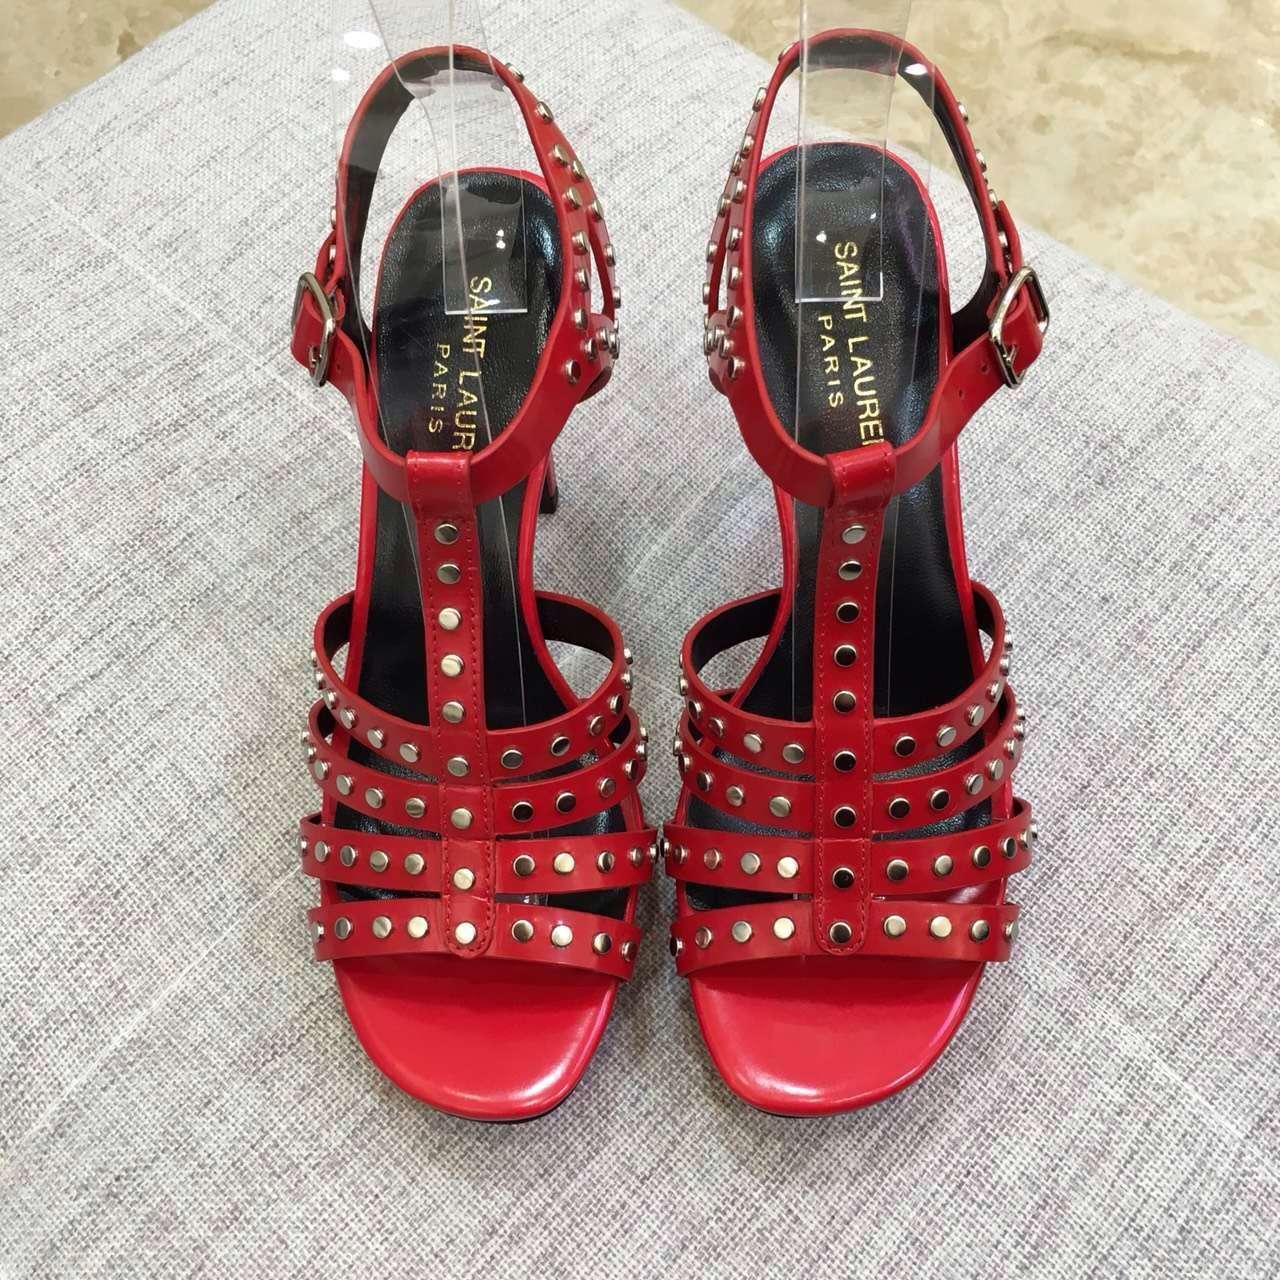 2016 Saint Laurent Shoes Cheap Sale-Saint Laurent Classic TRIBUTE 105 Studded Sandal in Red Leather and Nickel